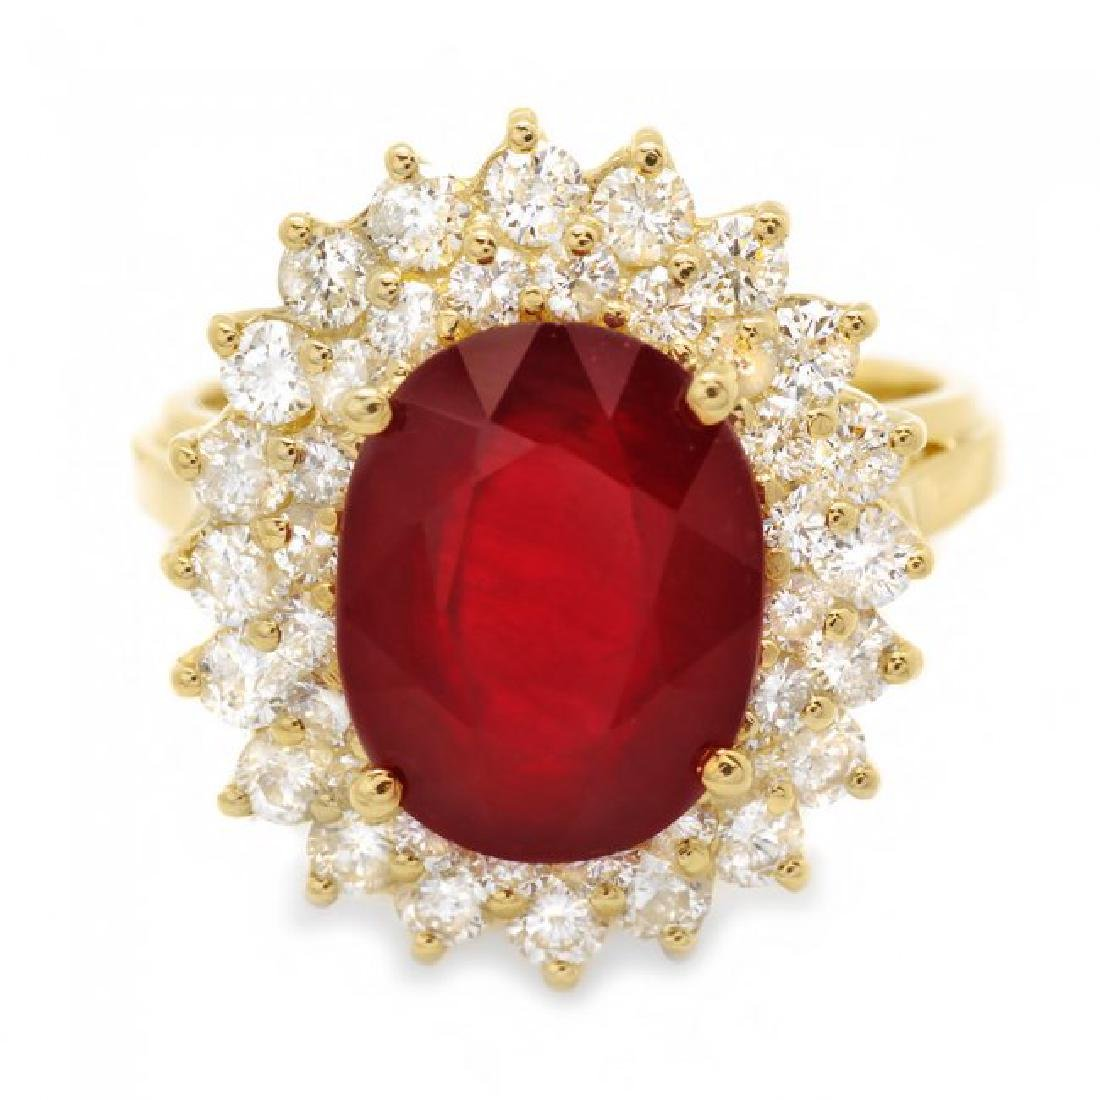 14k Yellow Gold 6.20ct Ruby 1.50ct Diamond Ring - 3